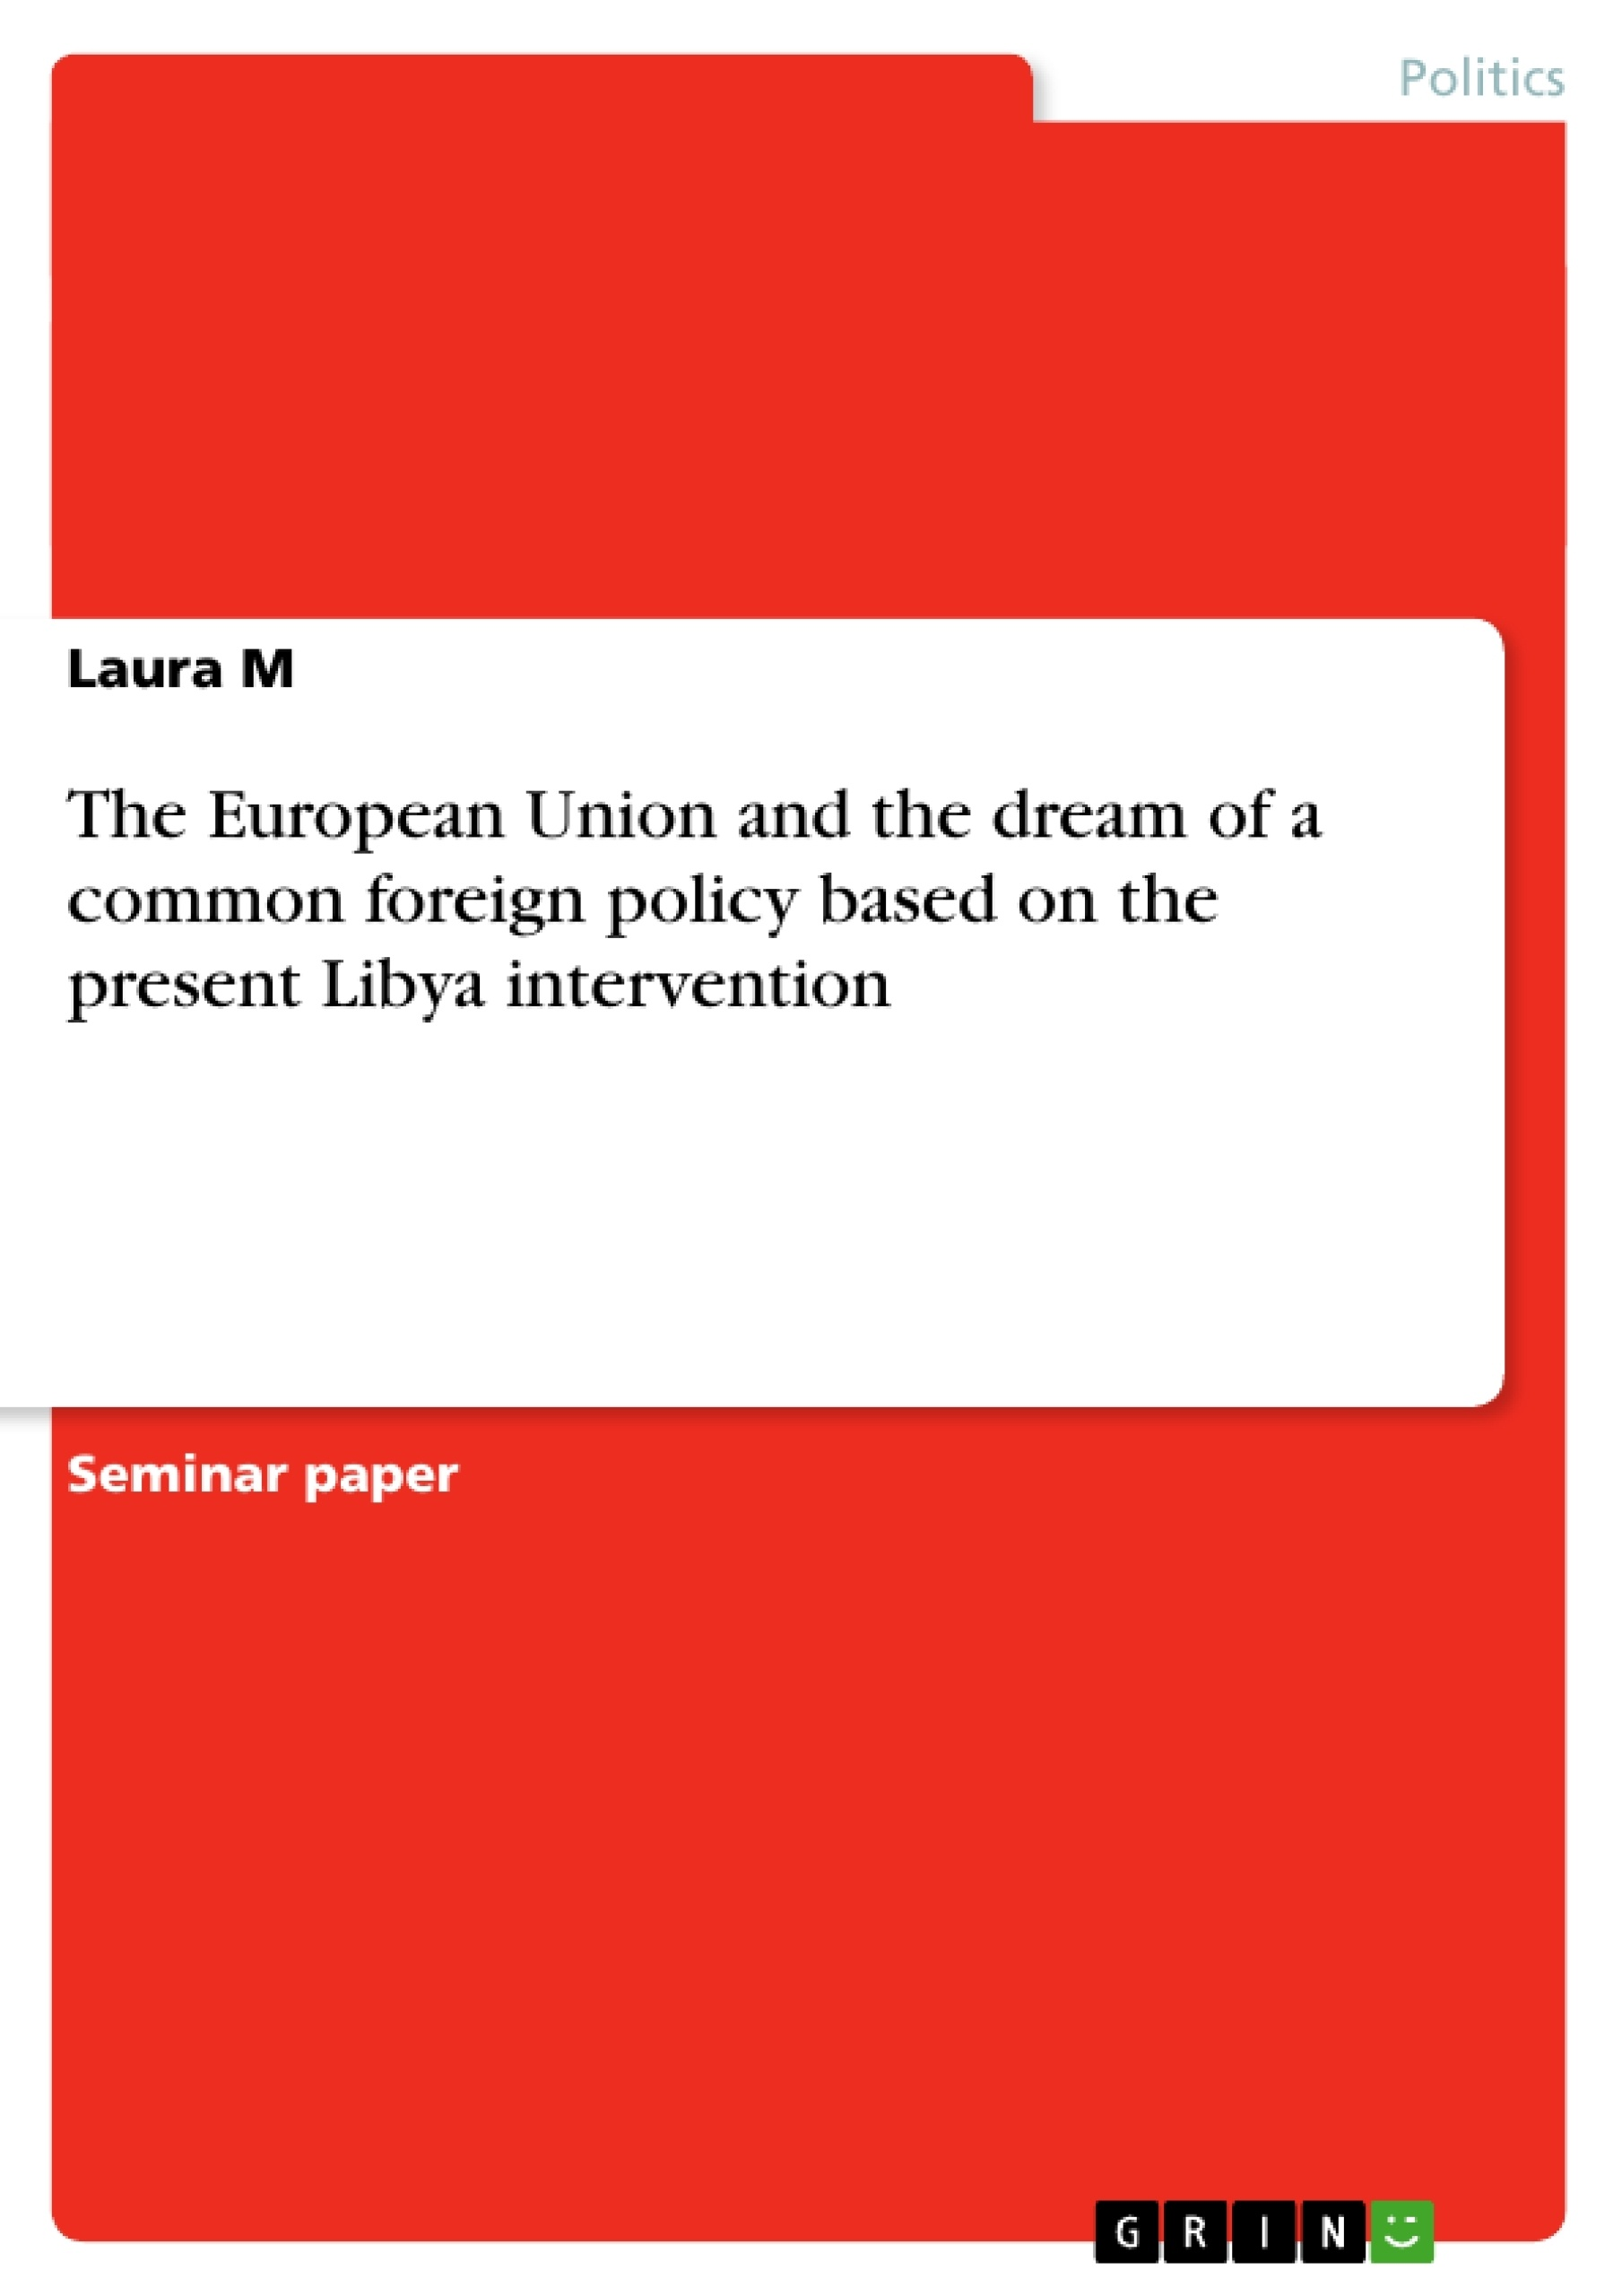 Title: The European Union and the dream of a common foreign policy based on the present Libya intervention